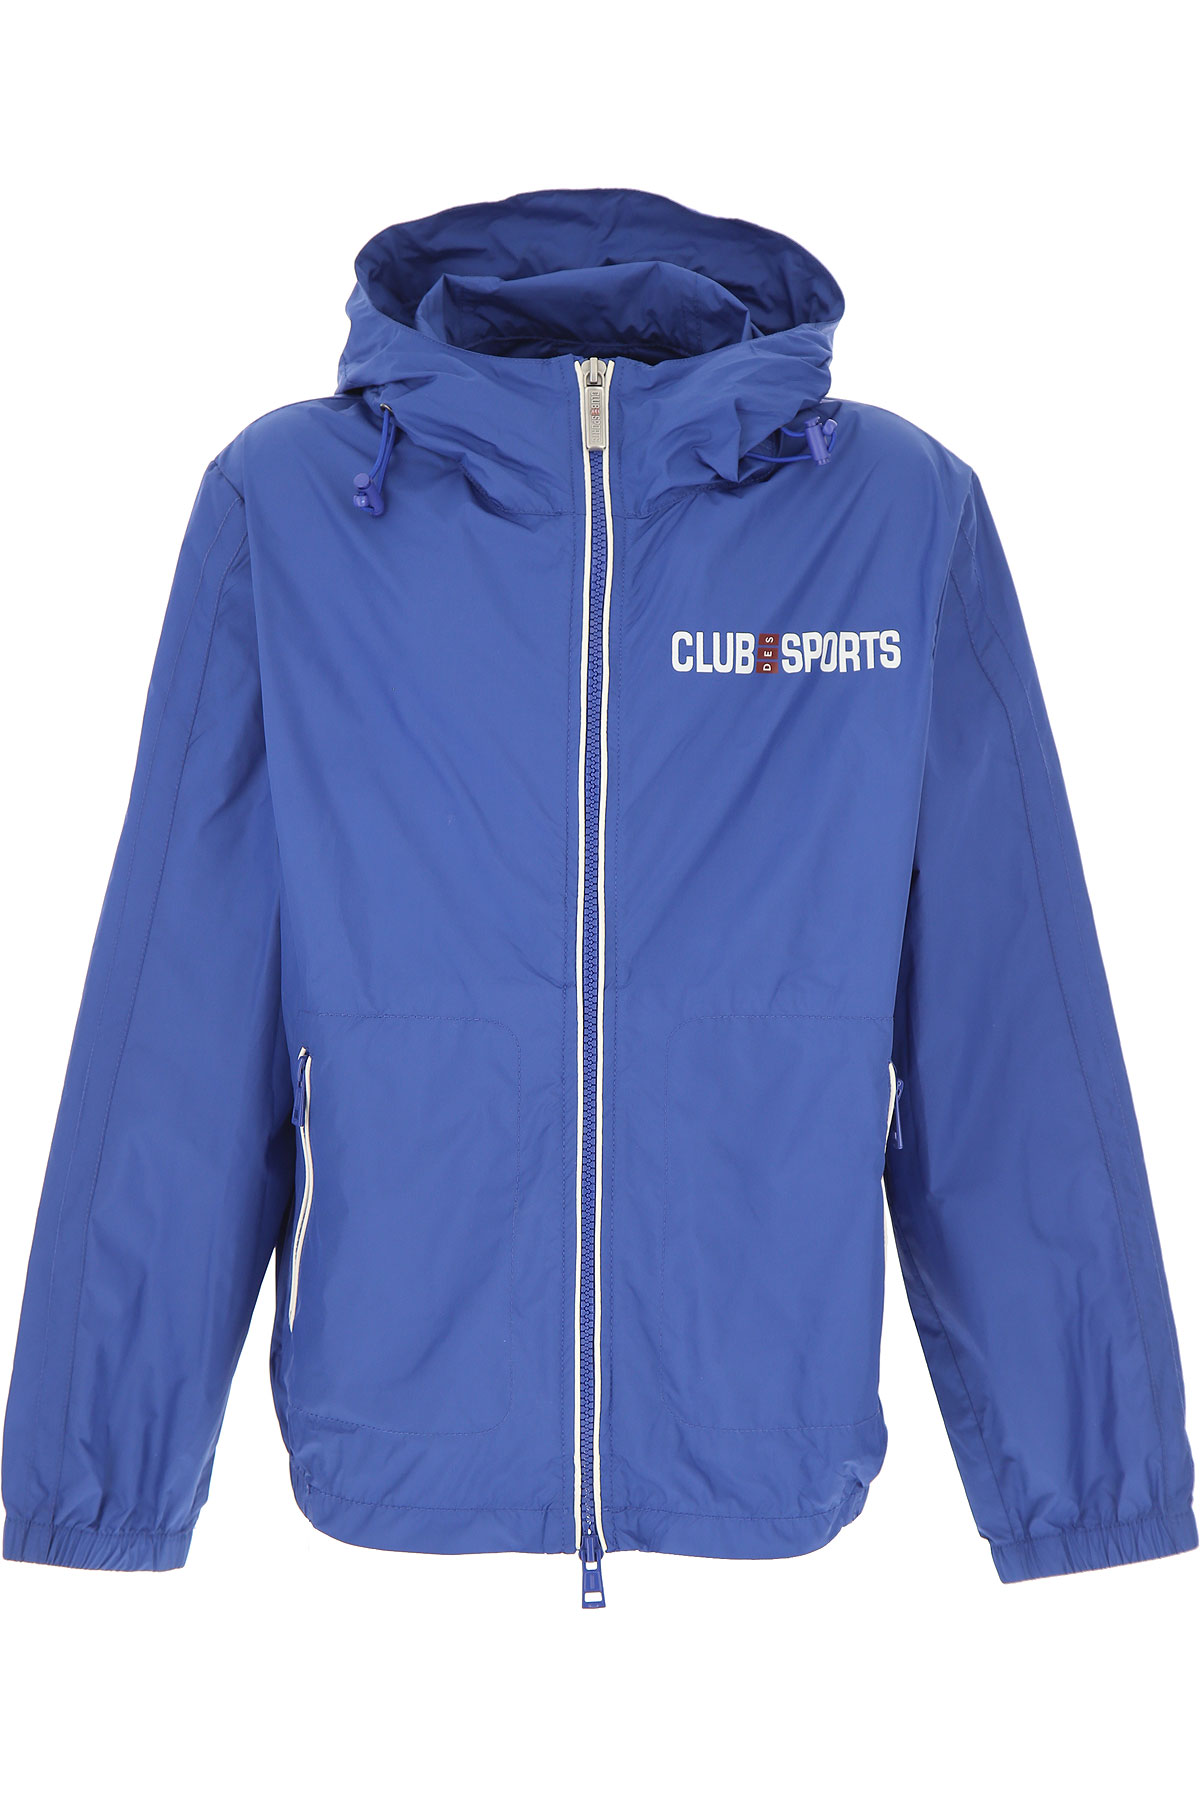 Club Sport Kids Jacket for Boys On Sale in Outlet, Blue, polyester, 2019, 10Y 6Y 8Y